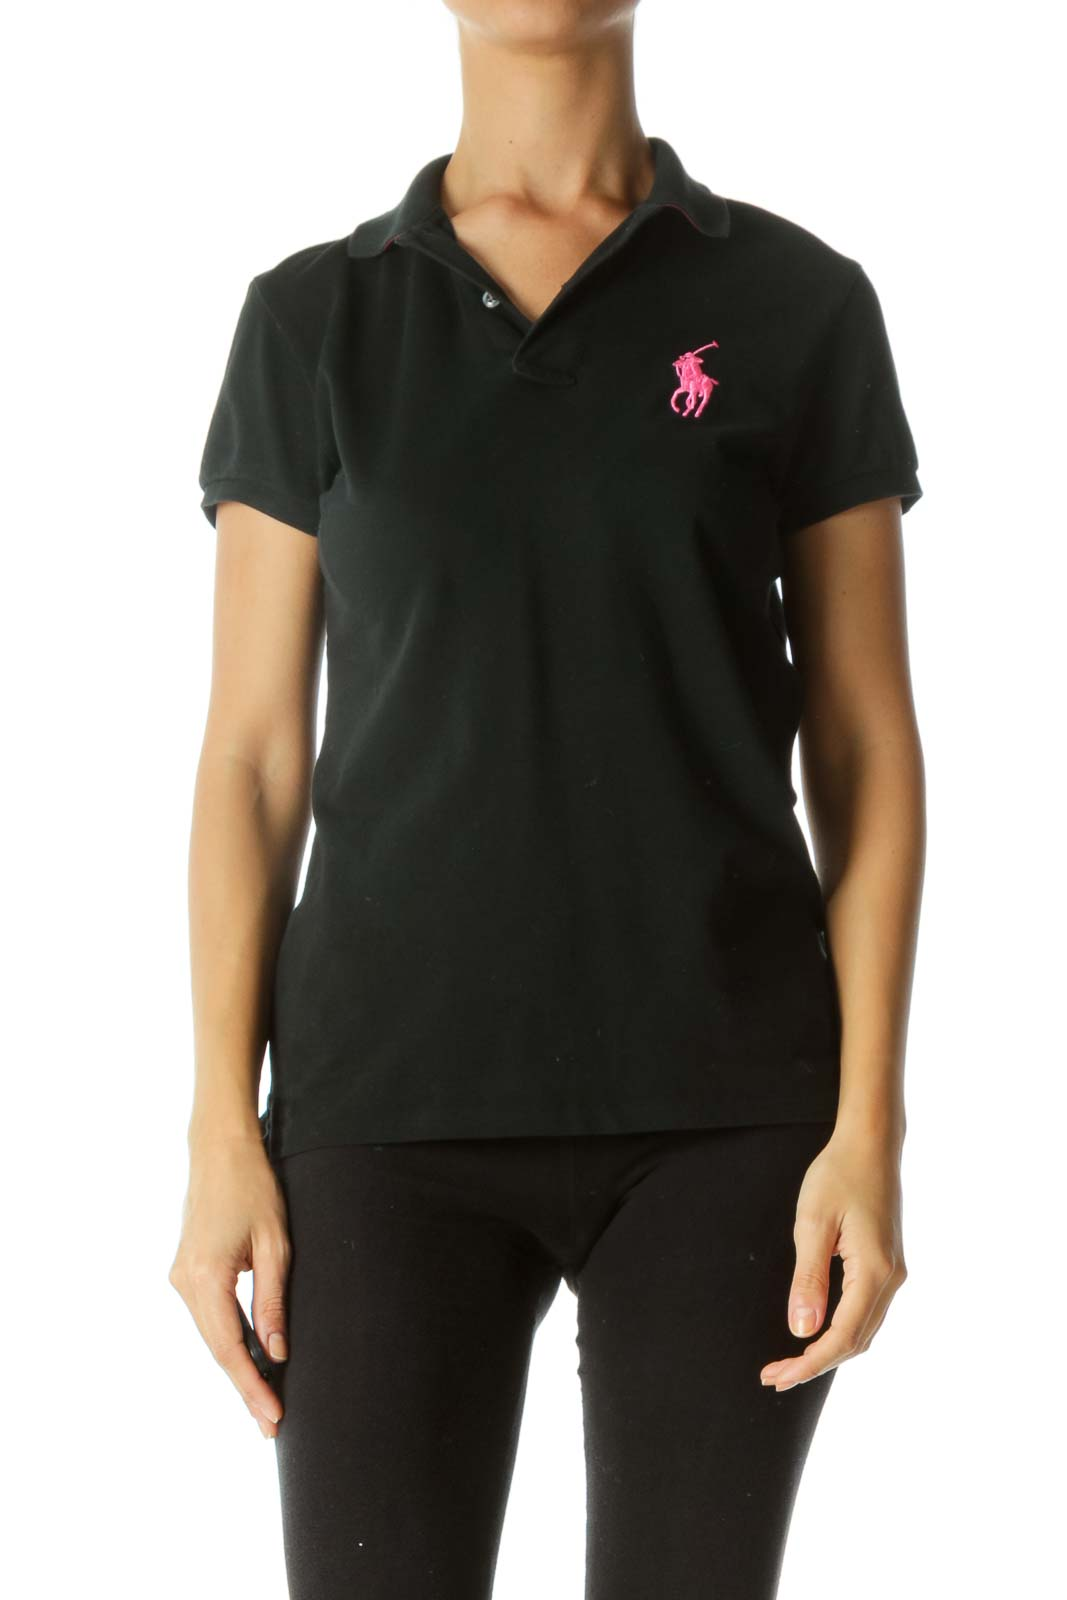 Black Neon Pink 100% Cotton Embroidered Logo Stretch Polo Shirt